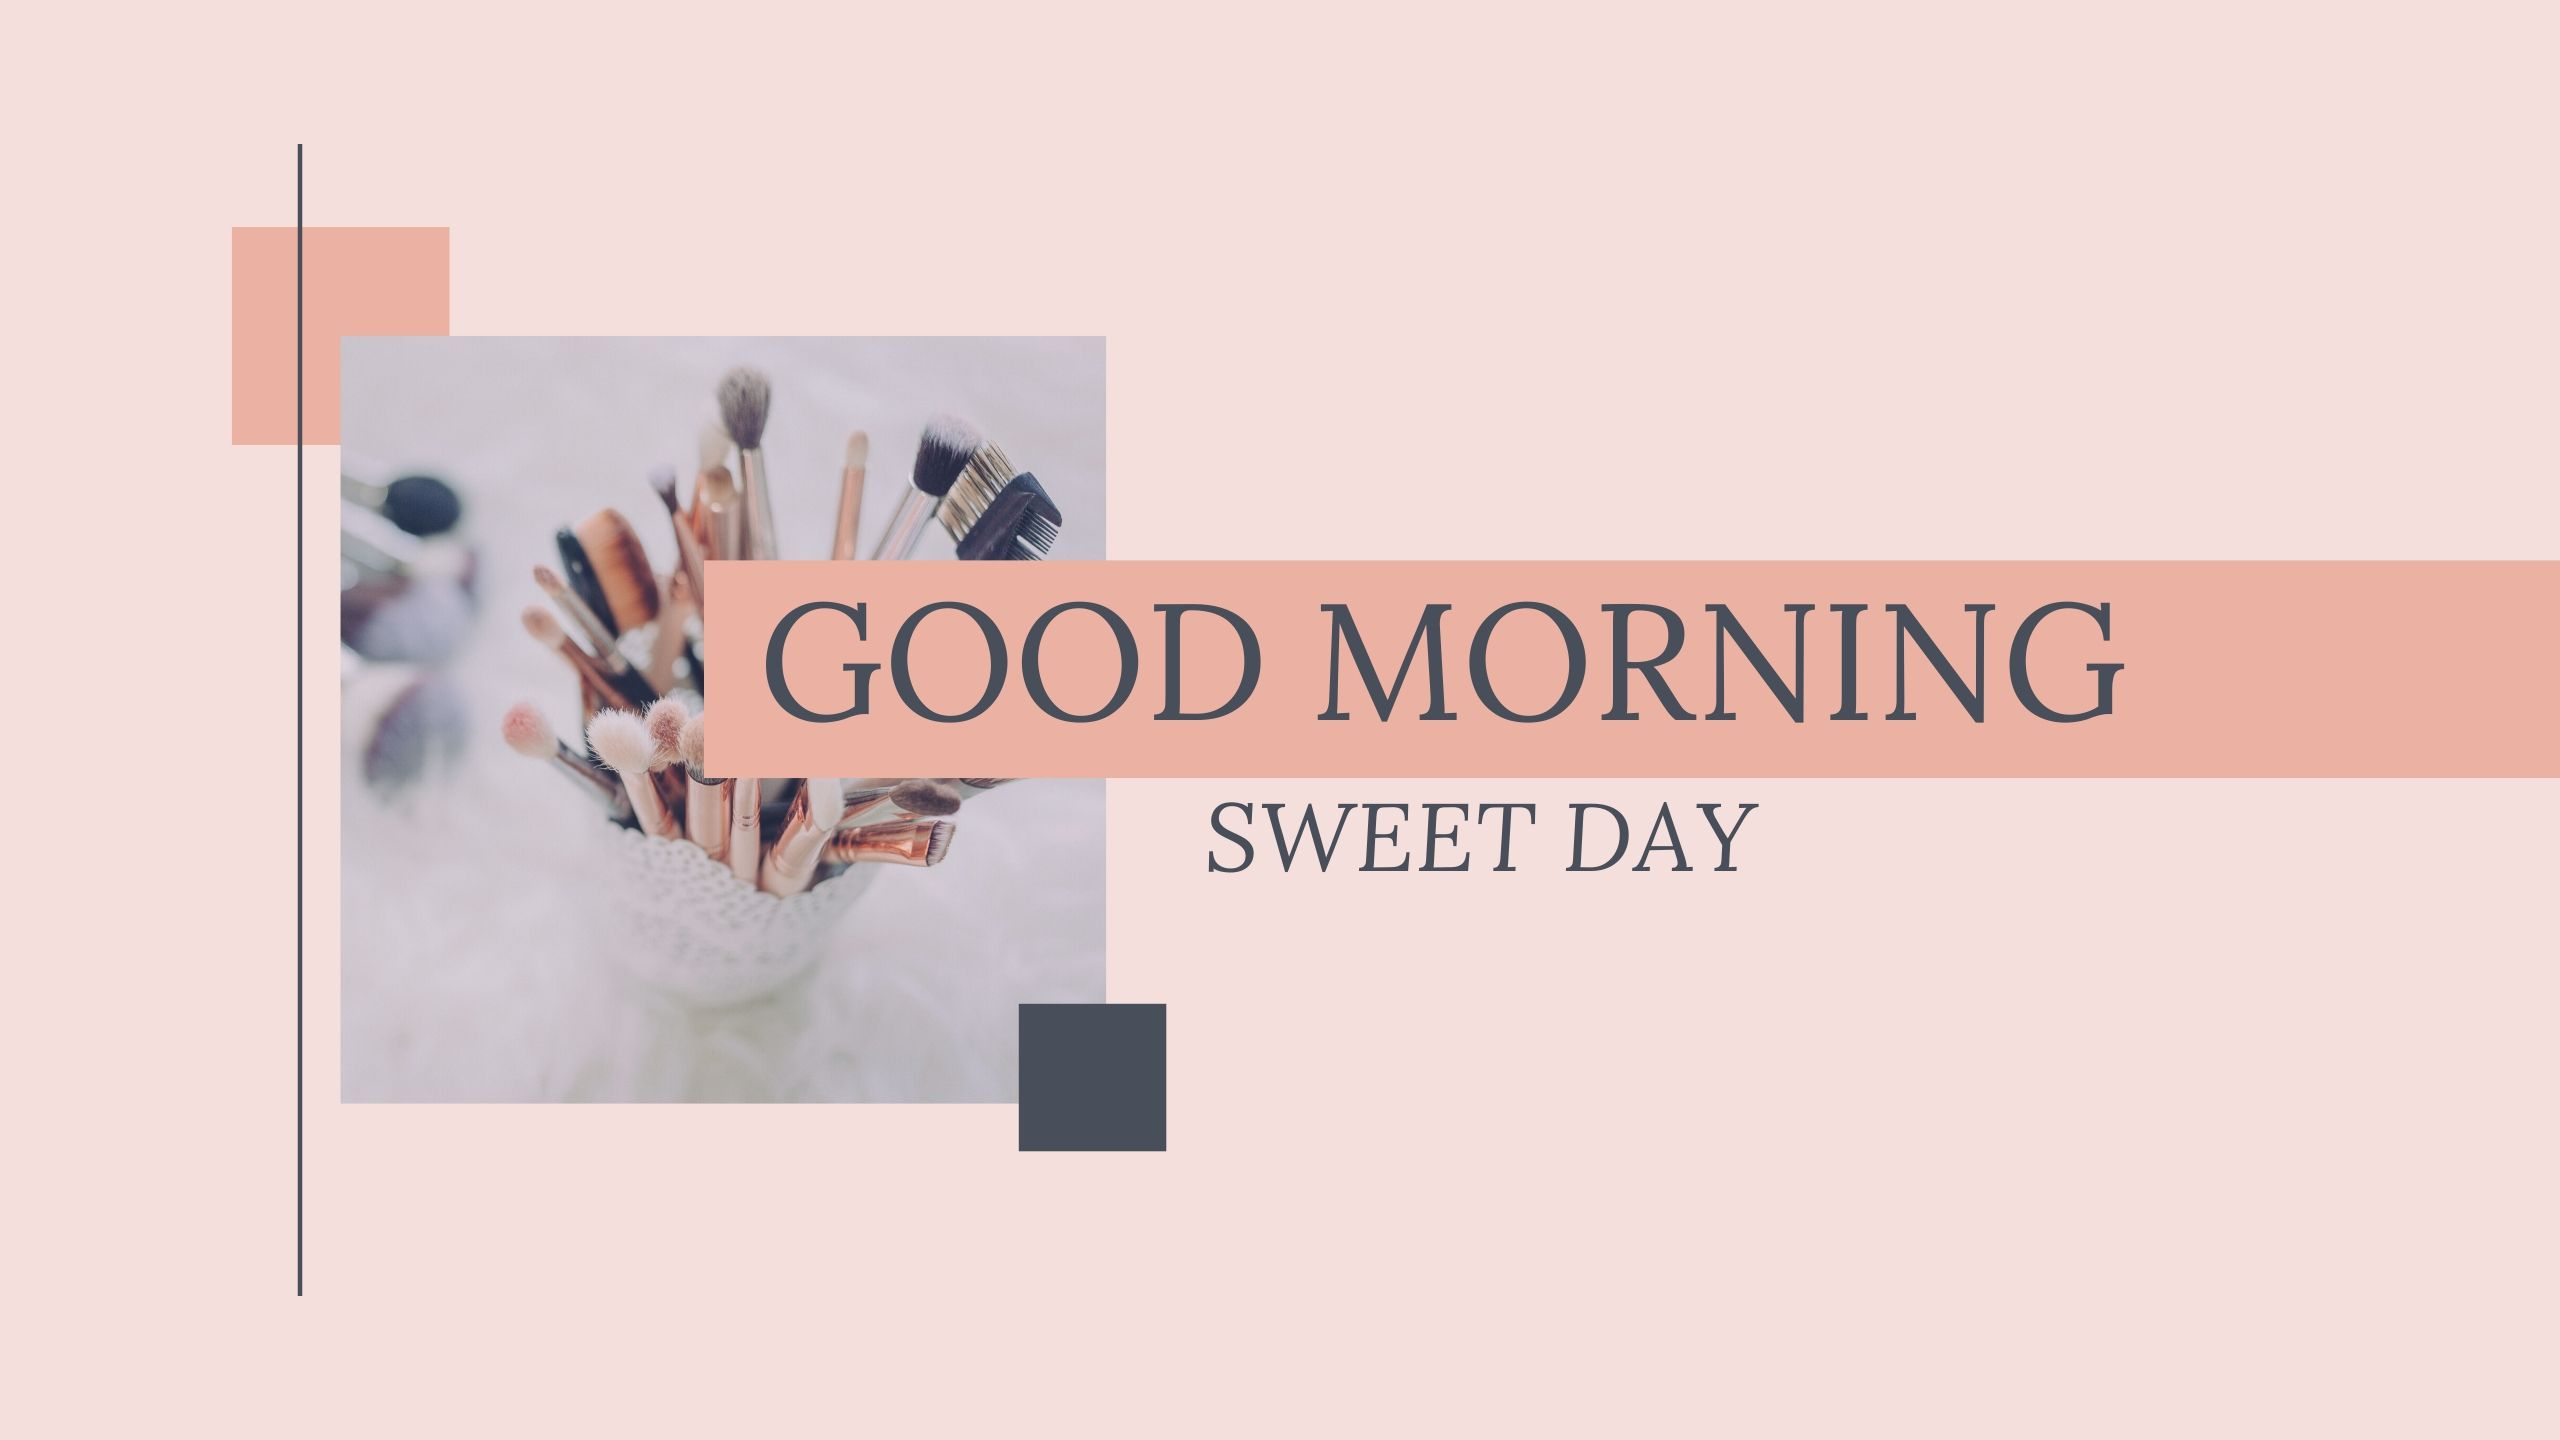 Good Morning Sweet day Image full HD free download.